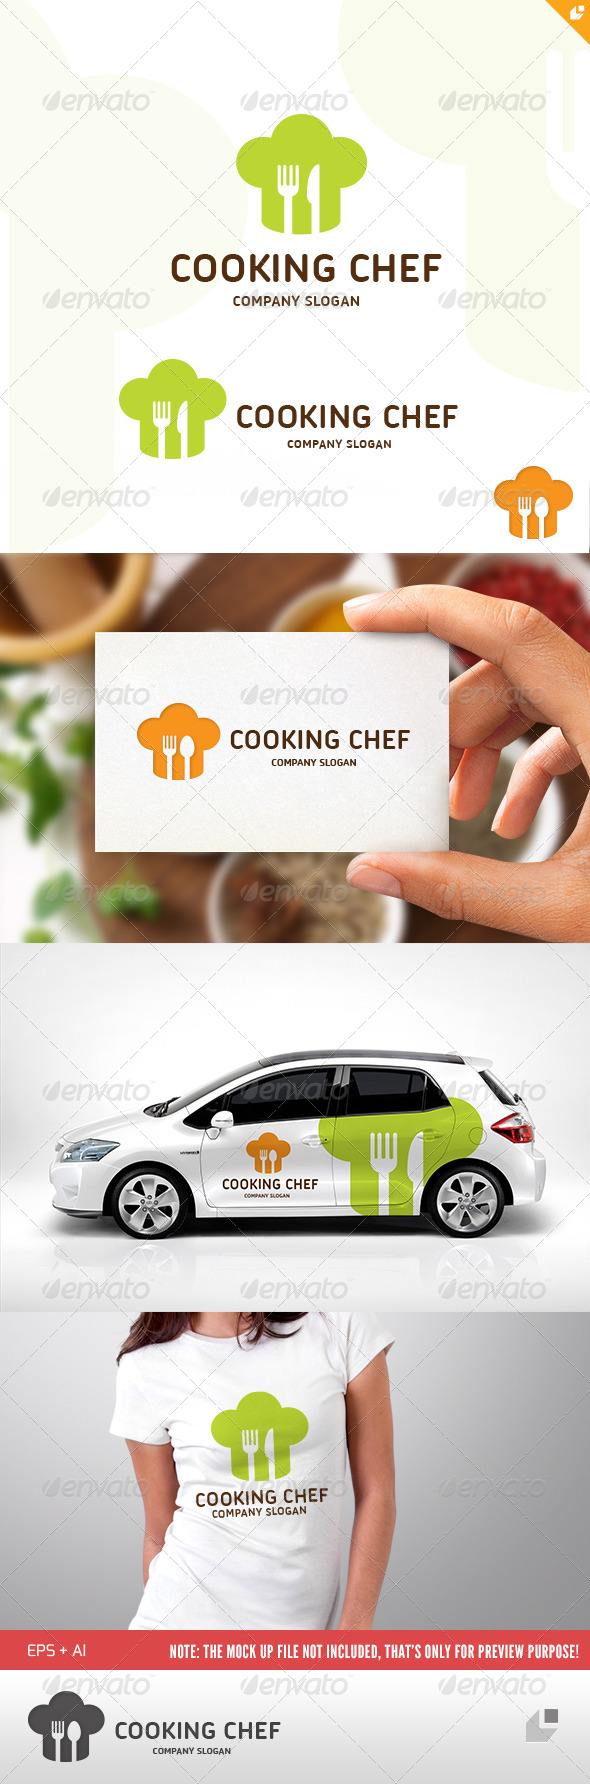 Cooking Chef Logo - Food Logo Templates